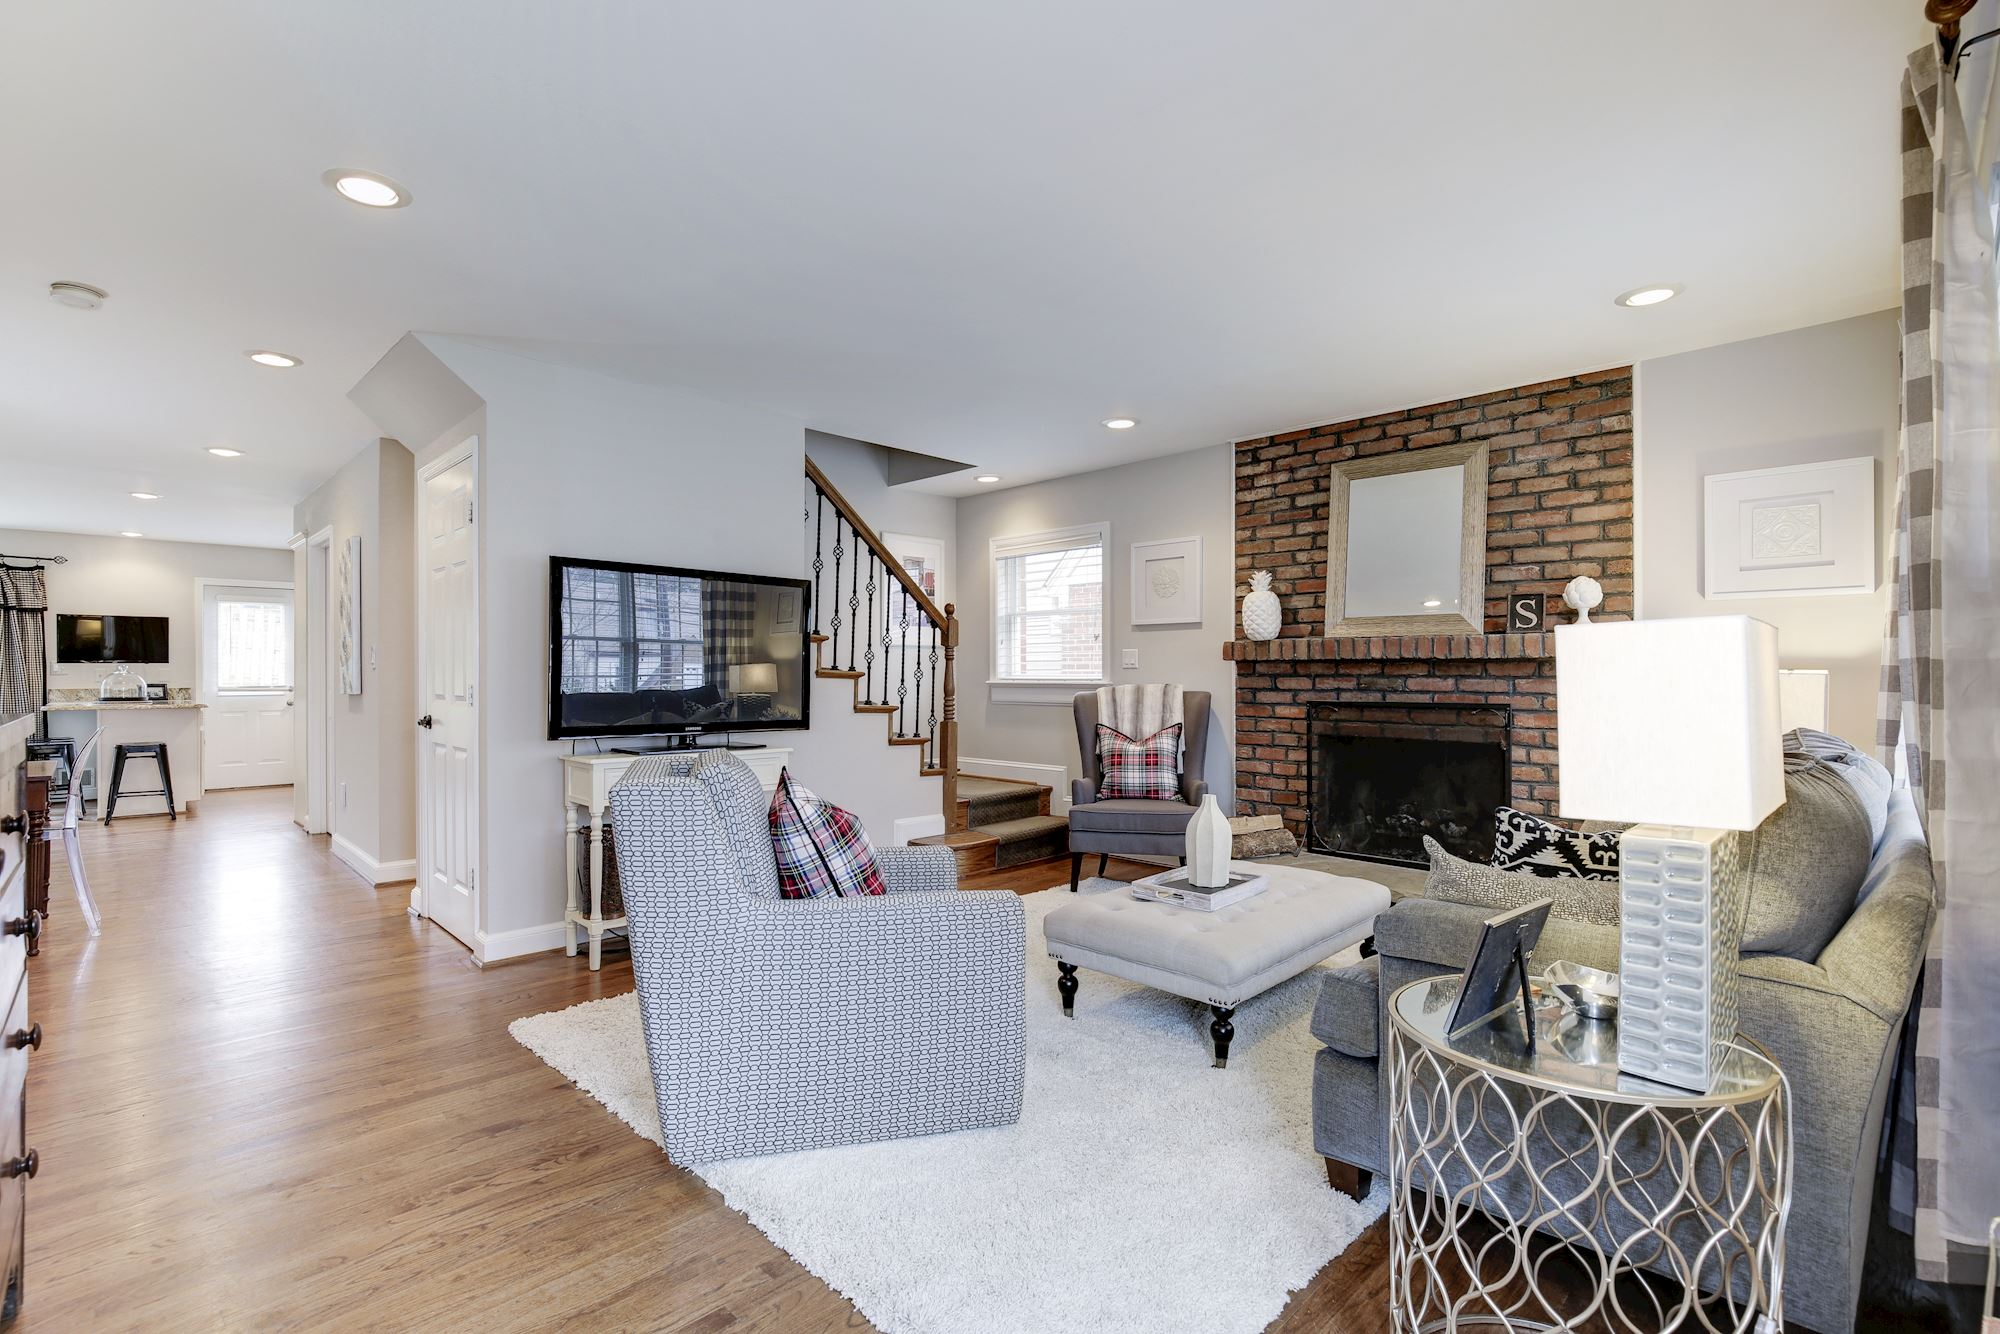 There Is A Wood Burning Fireplace In The Living Room, A Great Laundry Room  On The First Floor, And Extra Storage Can Be Found Everywhere.